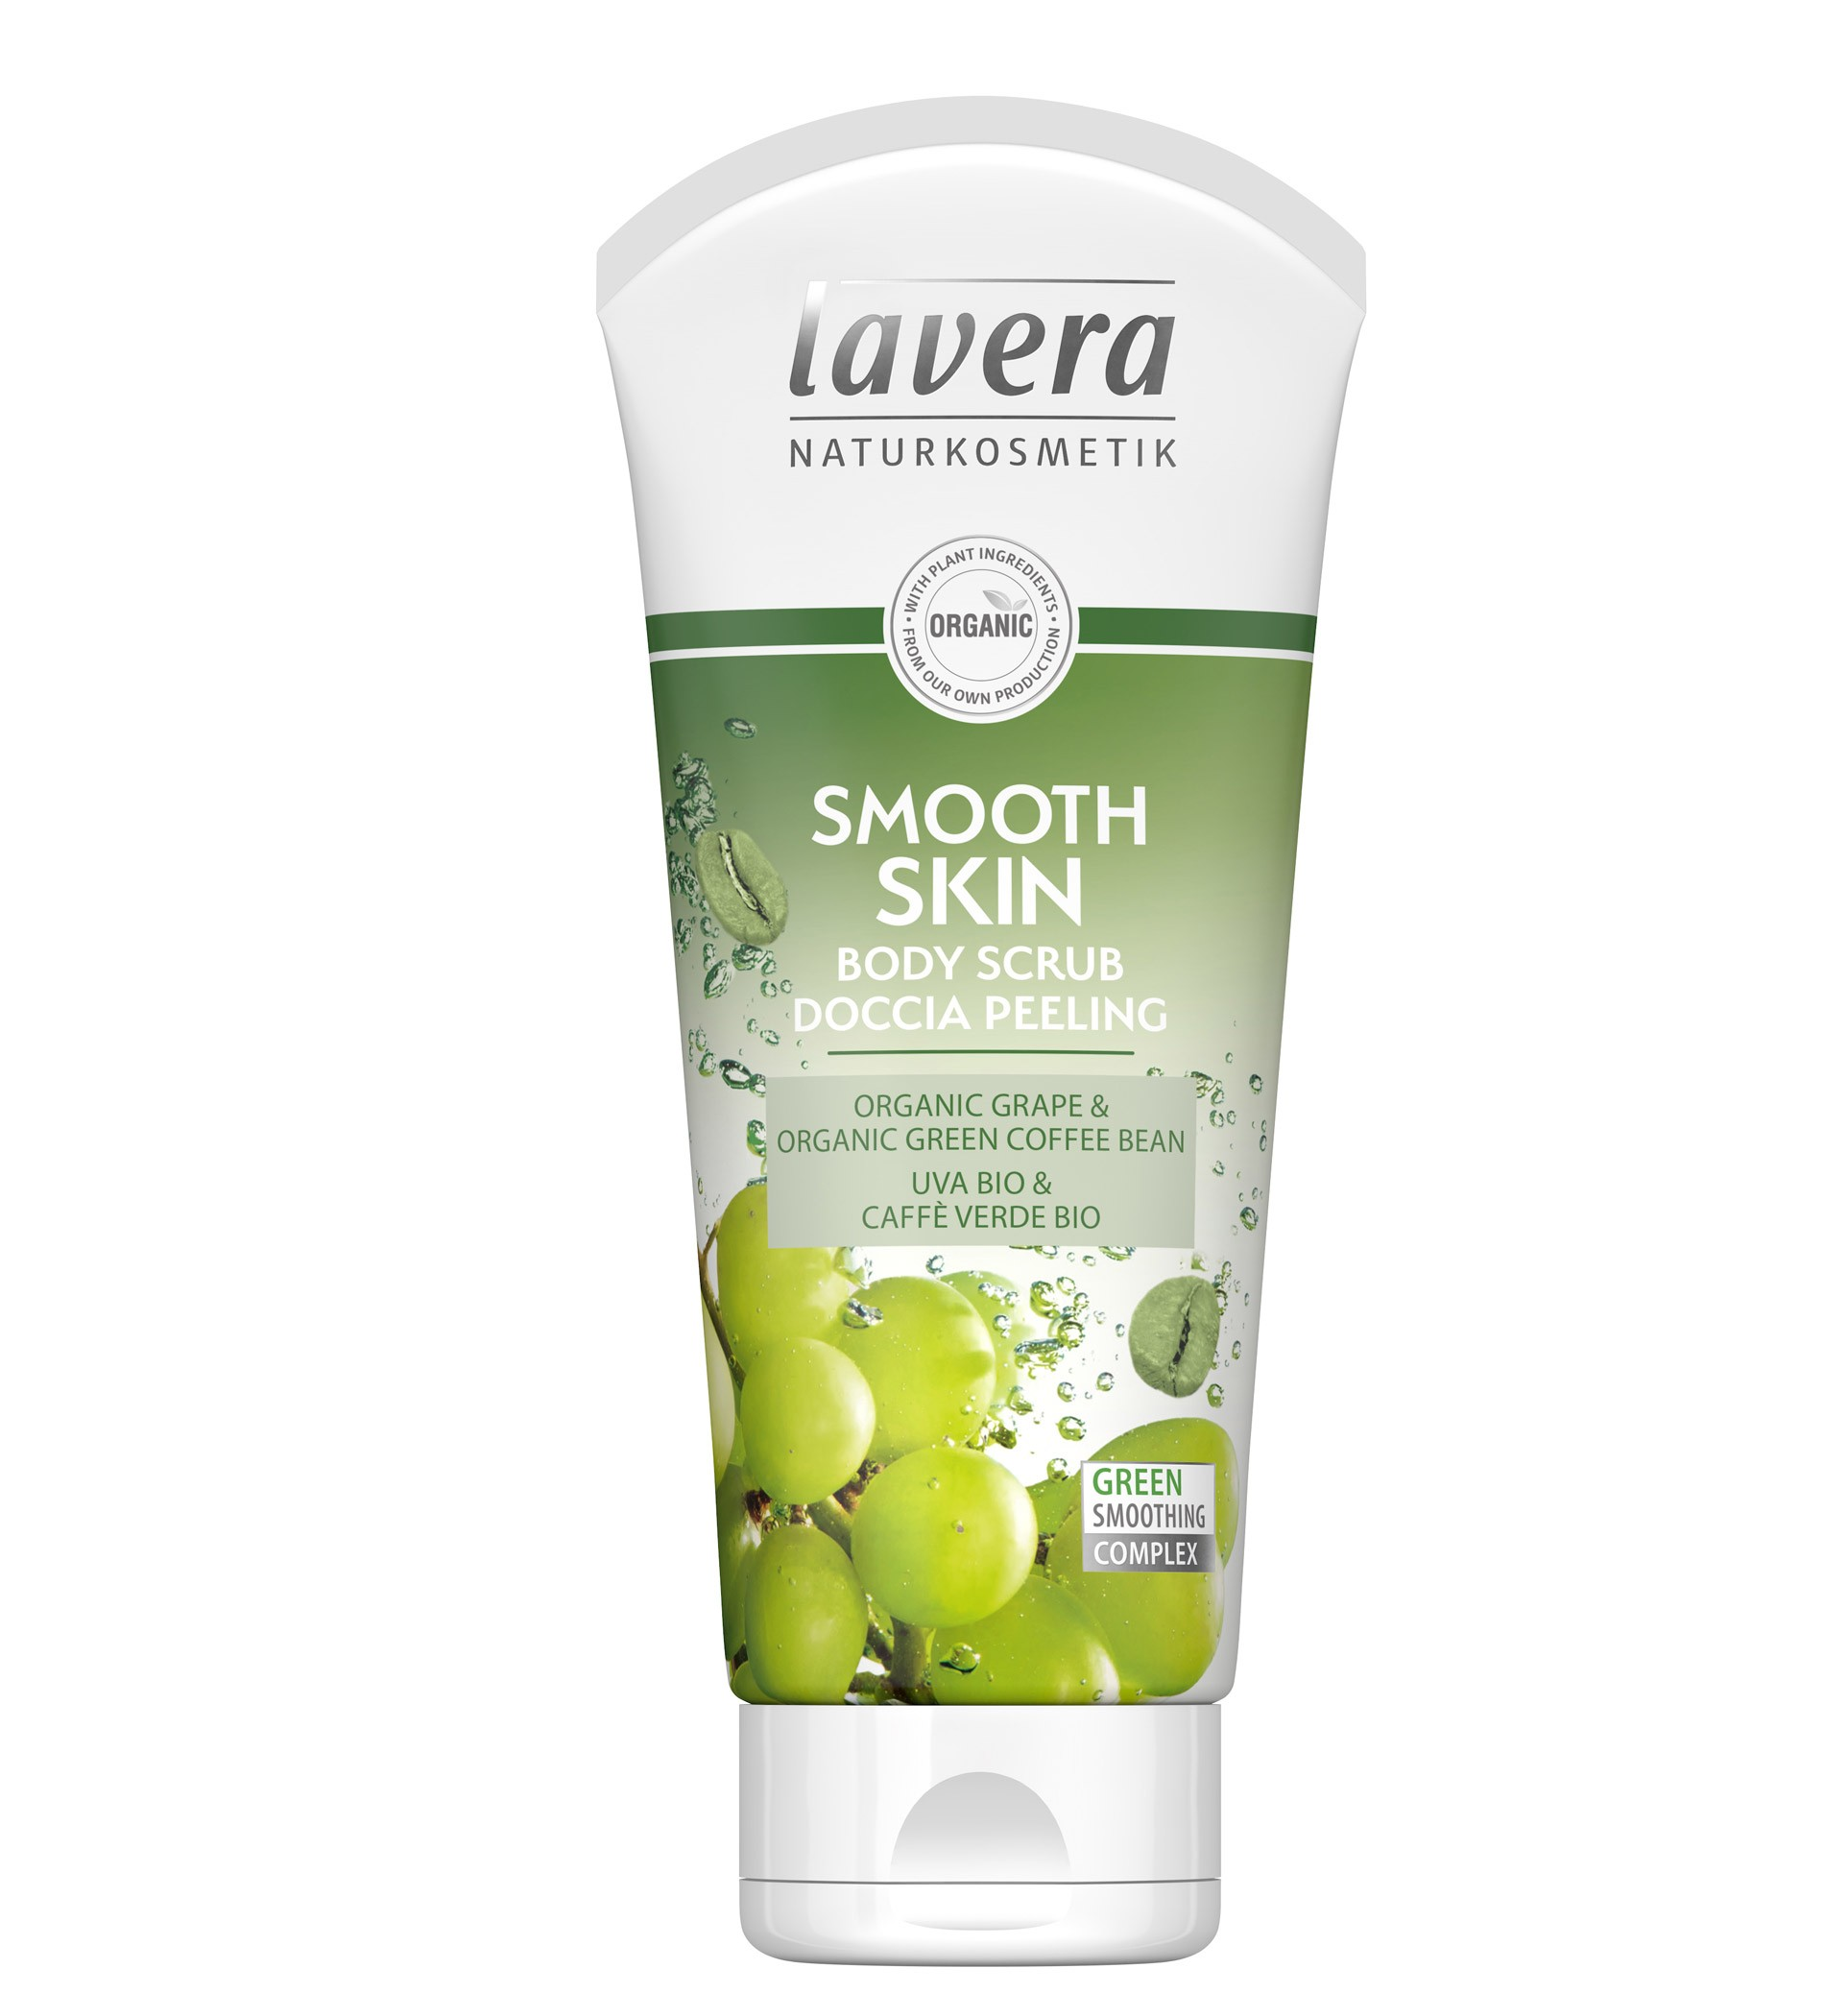 Lavera Smoothing 2in1 Scrub Shower Gel Grape & Green Coffee Bean